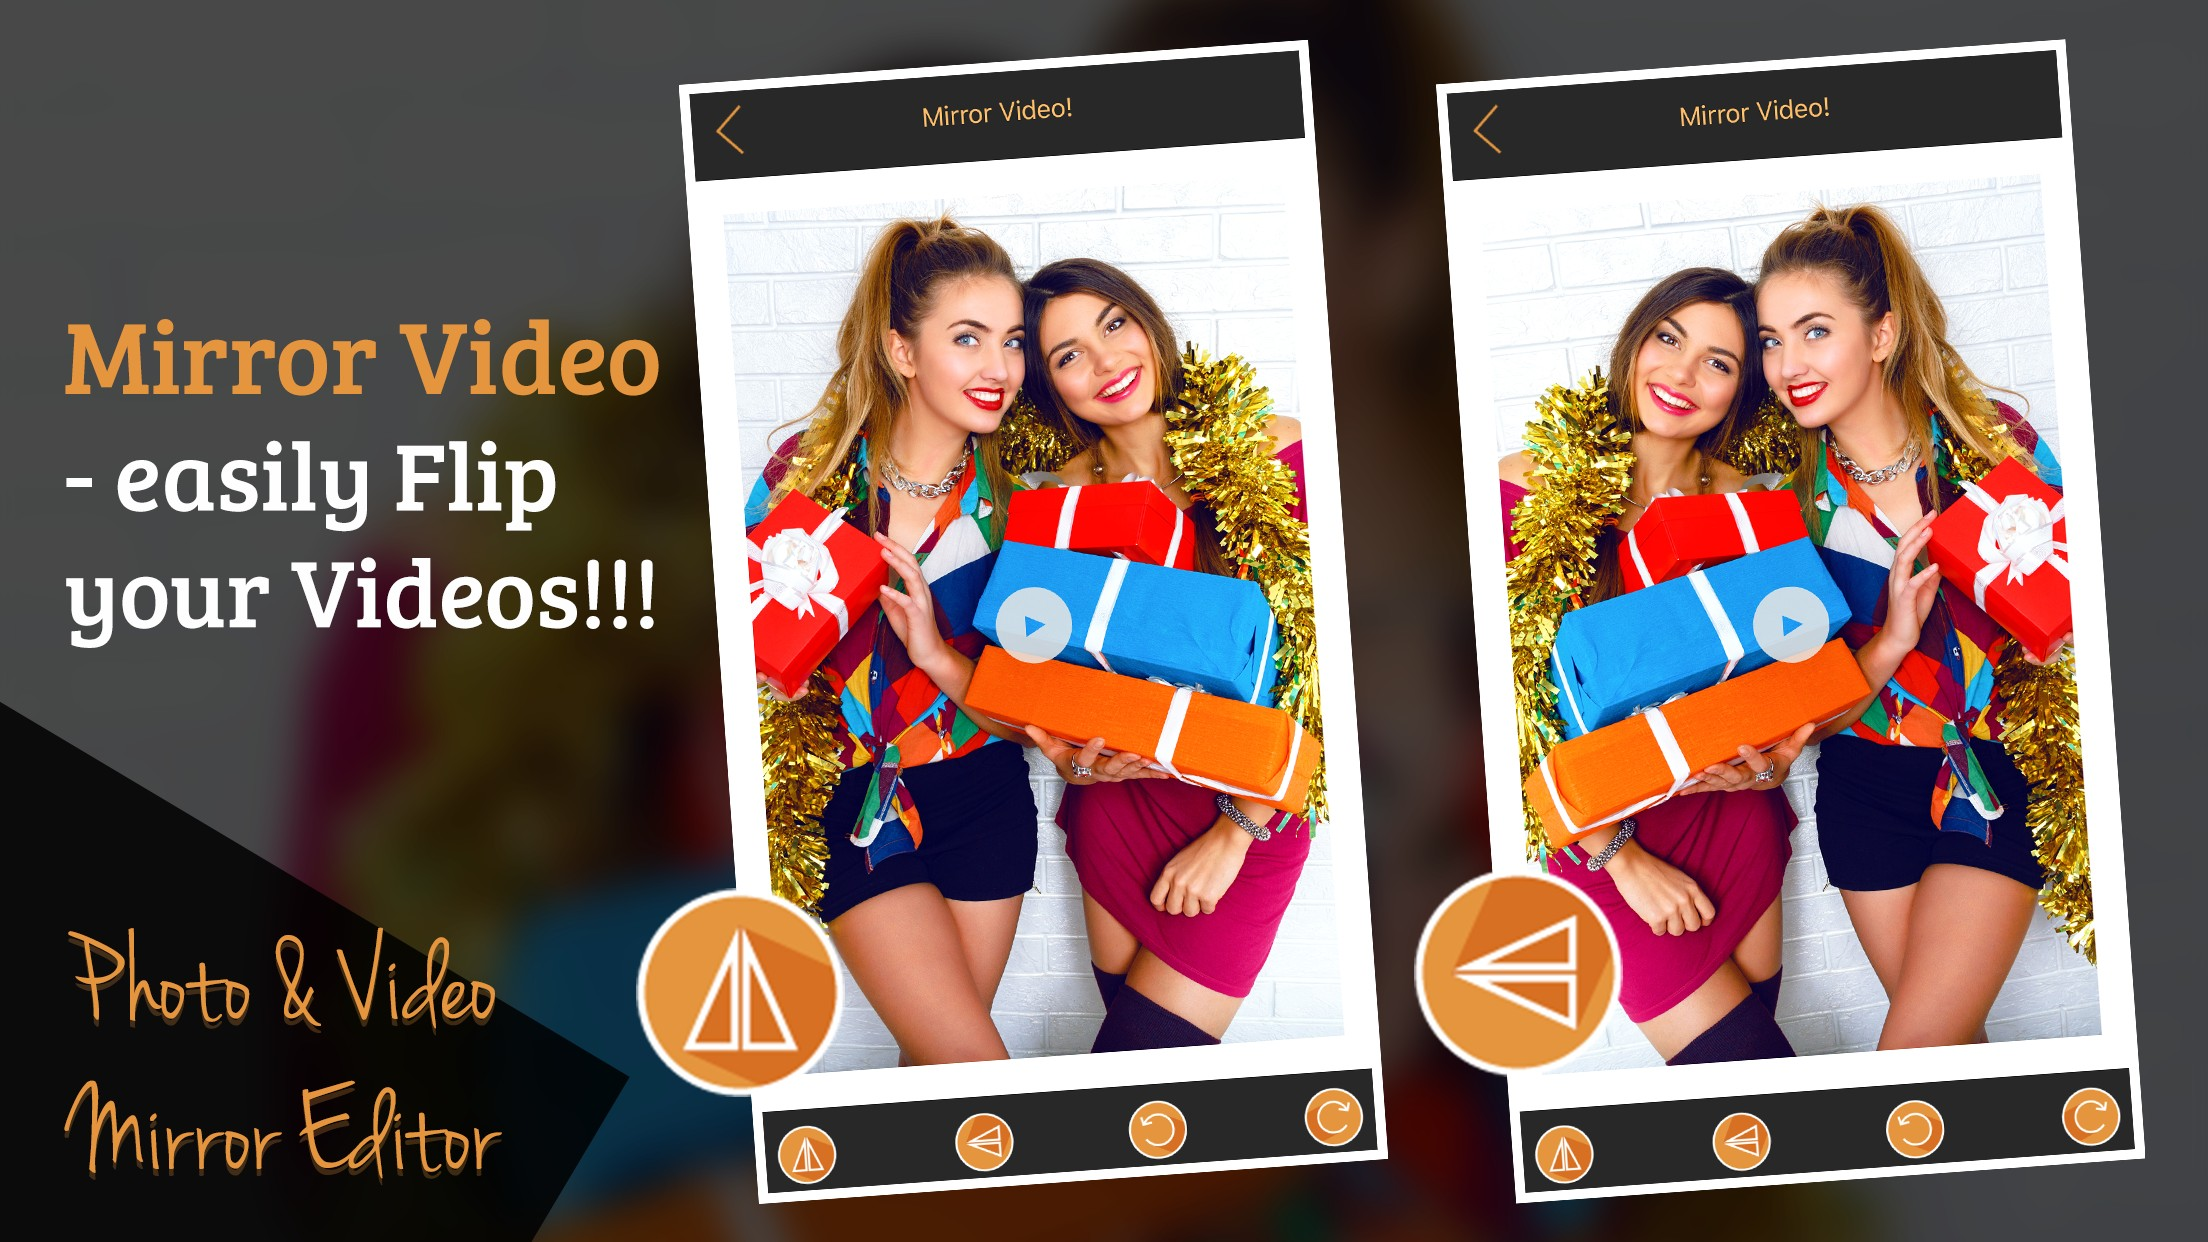 Photo and Video Mirror Editor